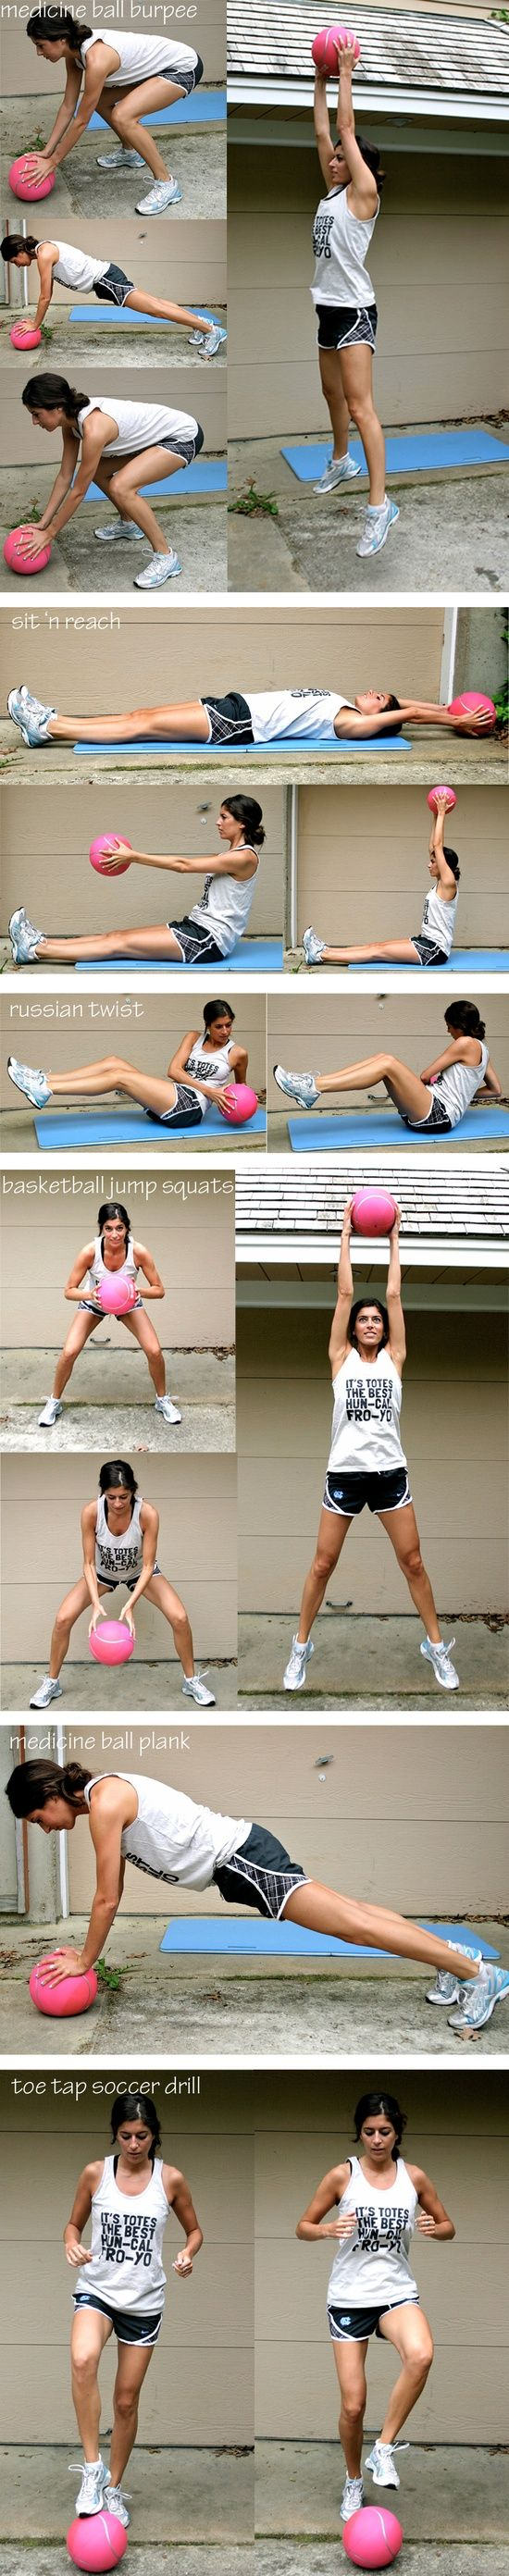 medicine ball interval workout. | the skinny | Pinterest